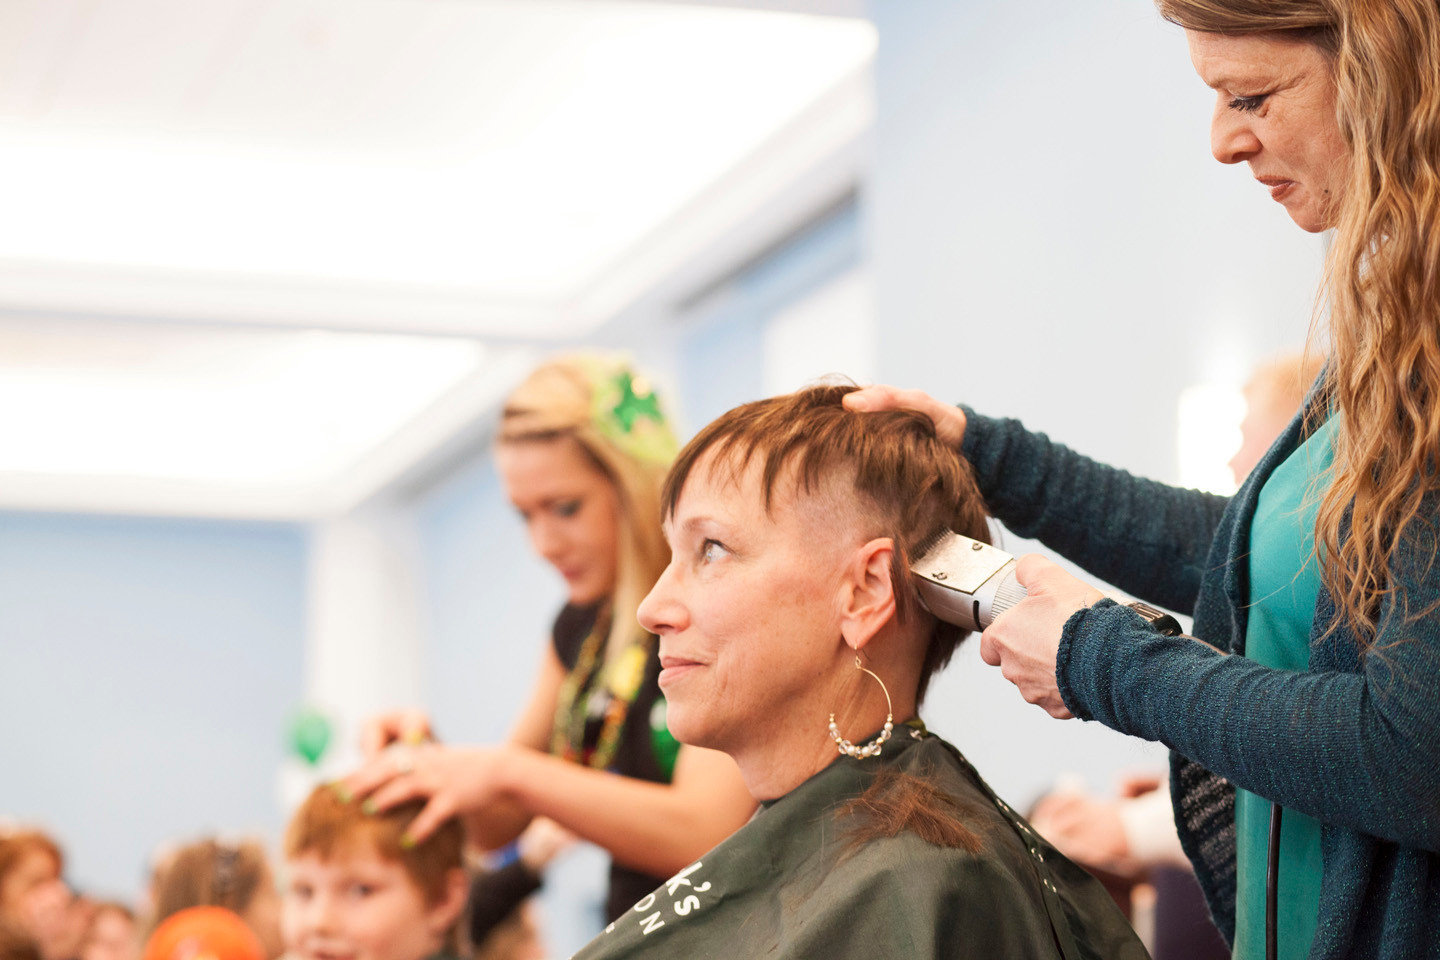 Cancer survivor Karen Jahn was the only woman to have her head shaved.